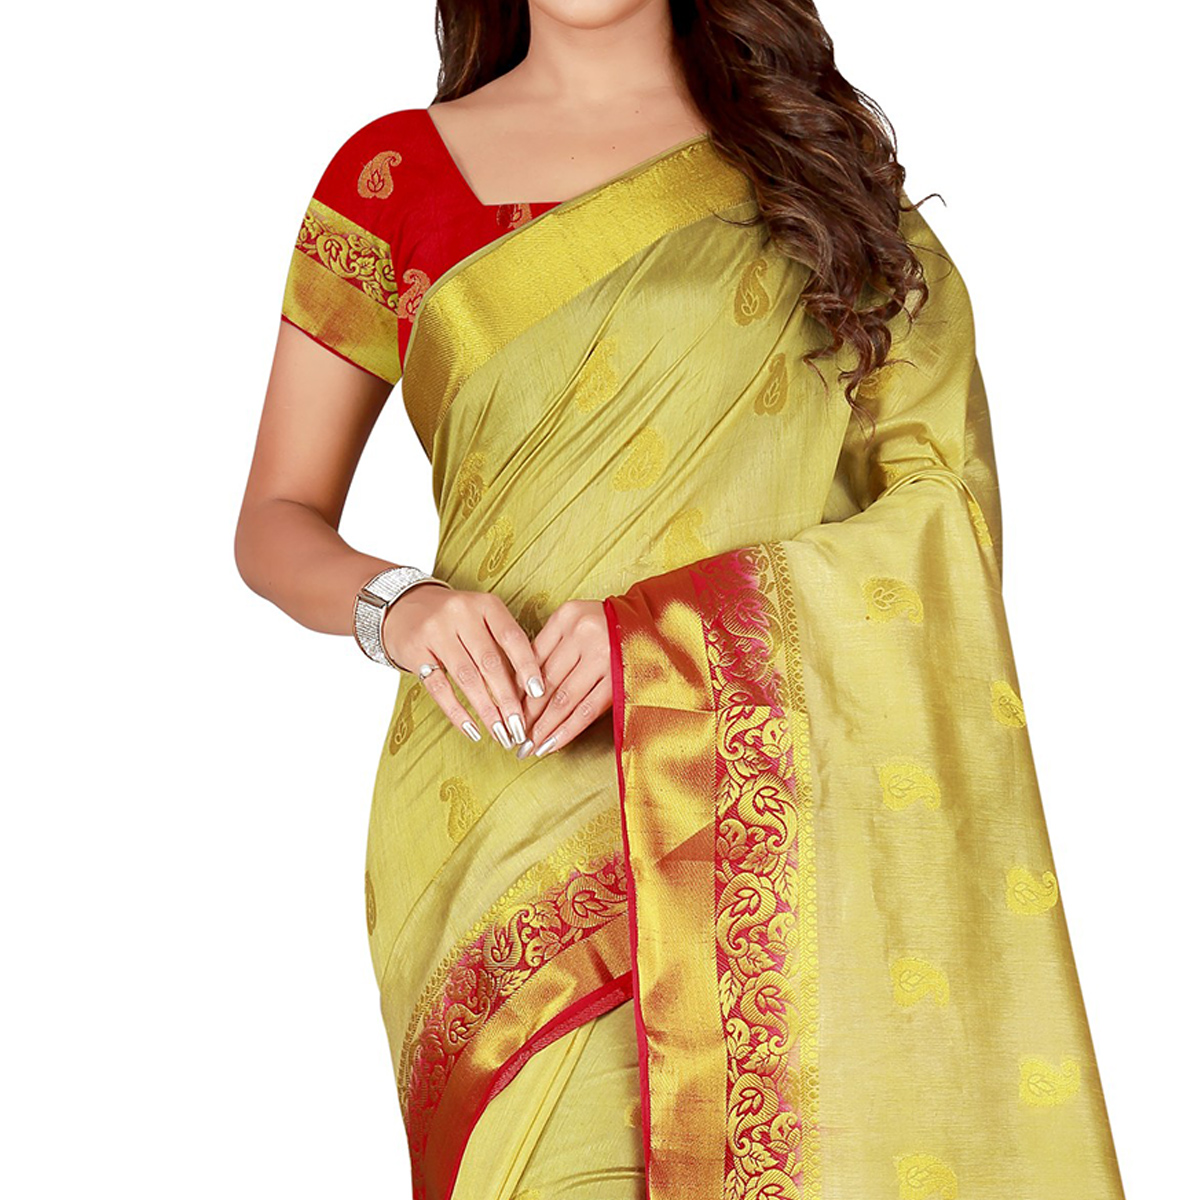 Ravishing Cream & Red Colored Festive Wear Woven Cotton Silk Saree